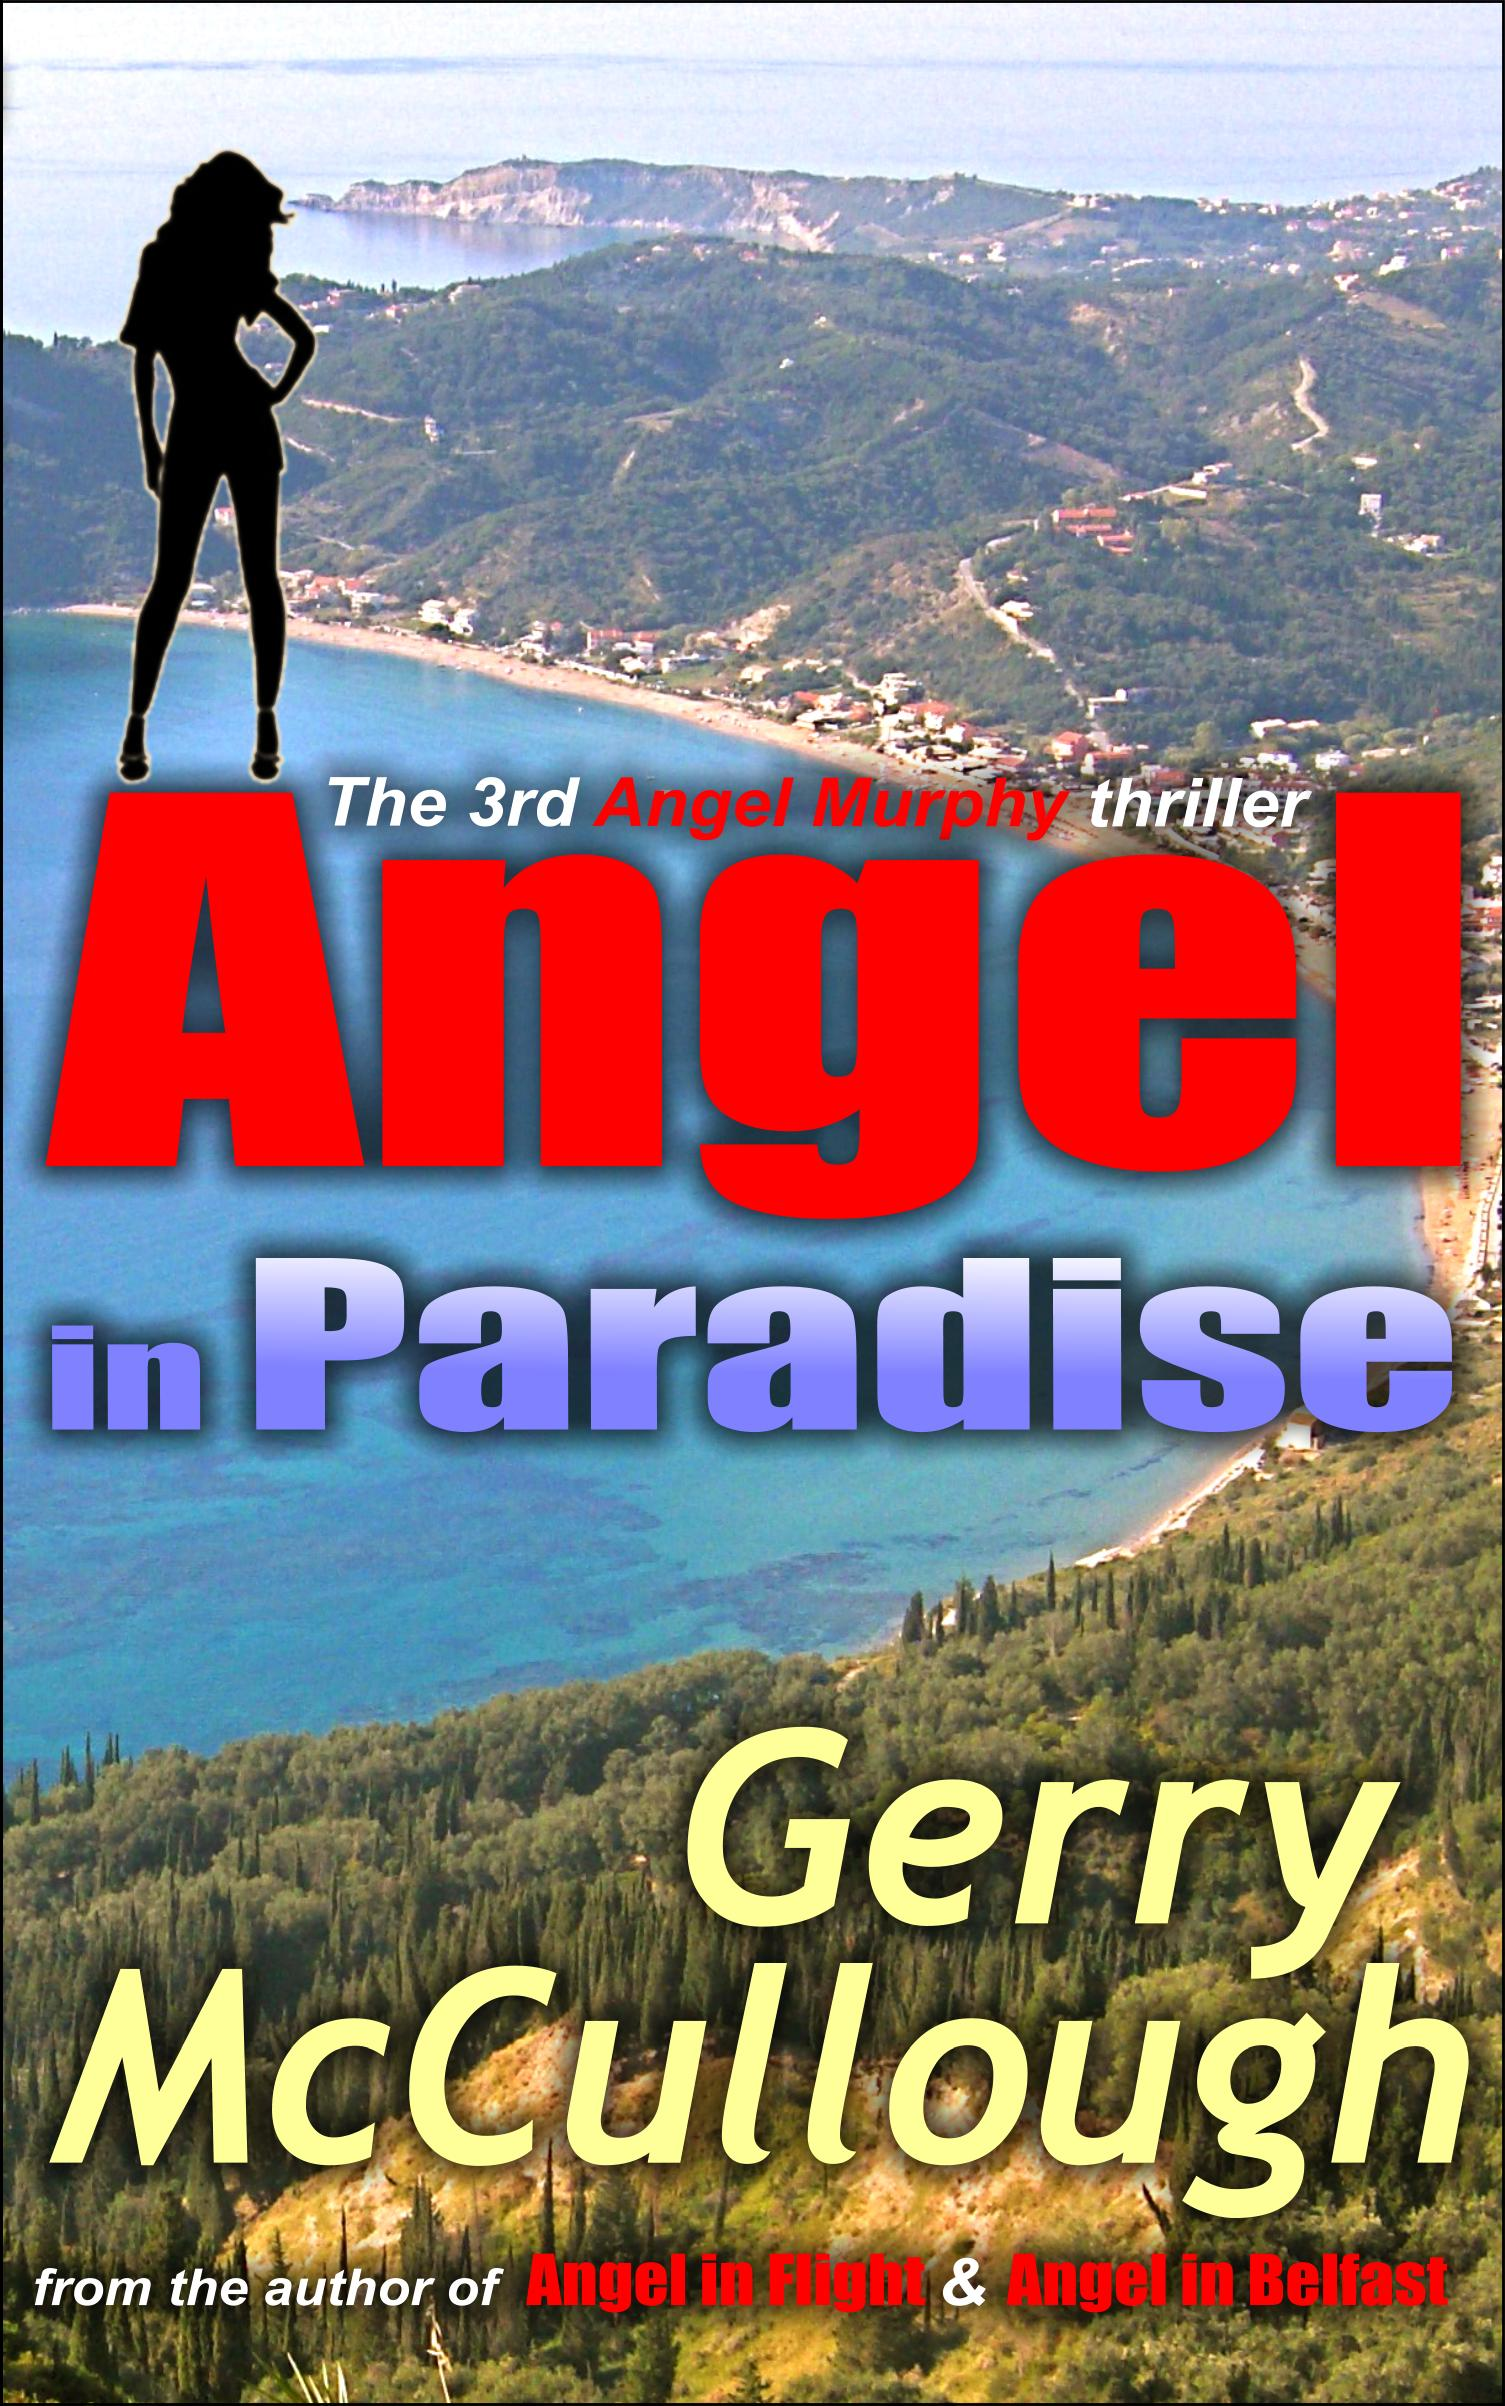 Angel in Paradise - more info